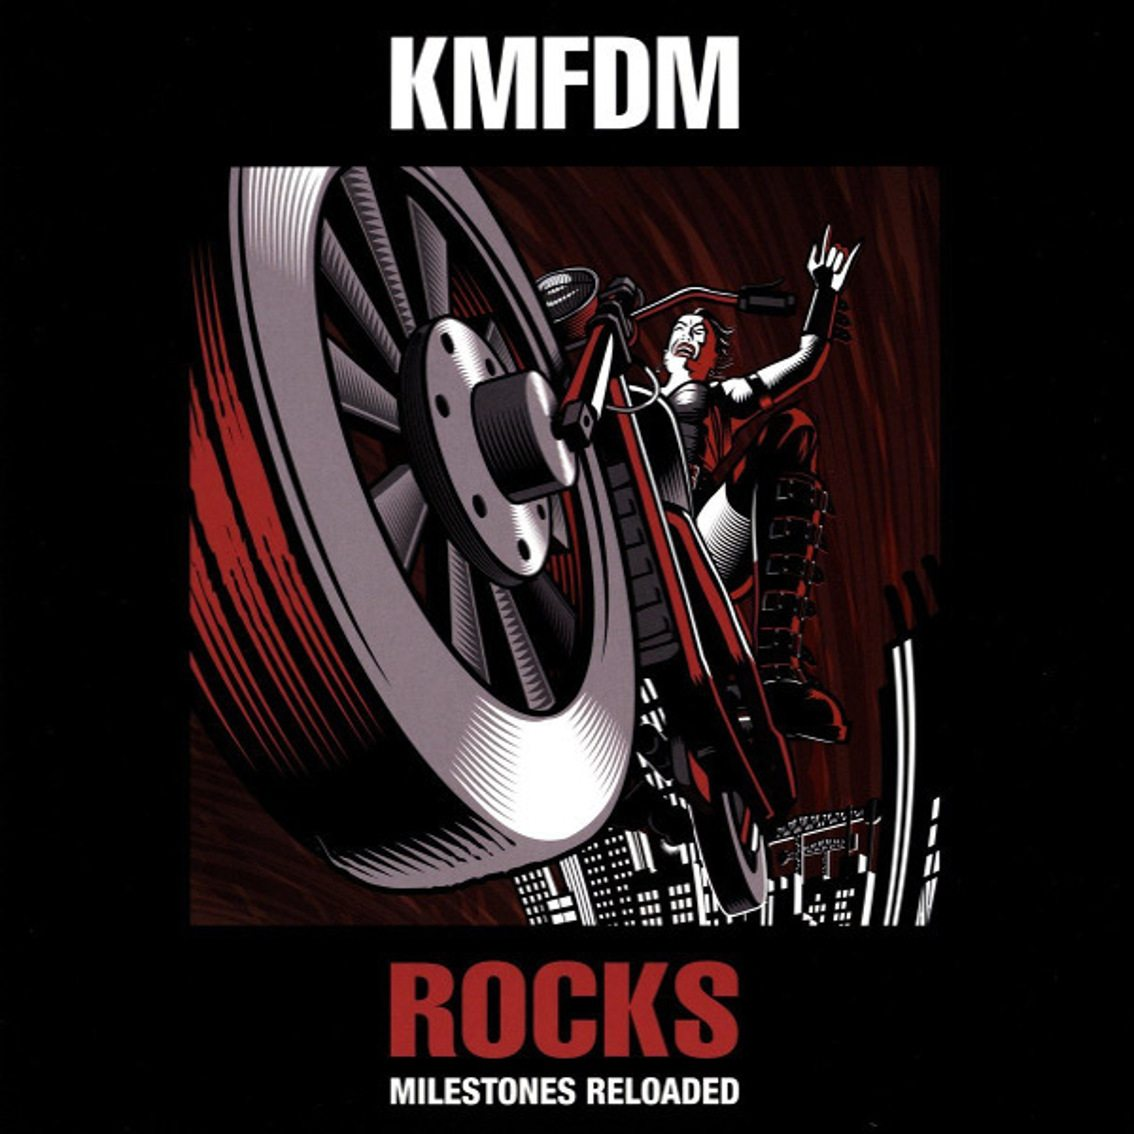 KMFDM leaves Metropolis and sign with earMusic to release'Rocks – Milestones Reloaded' remix album, out on double vinyl as well